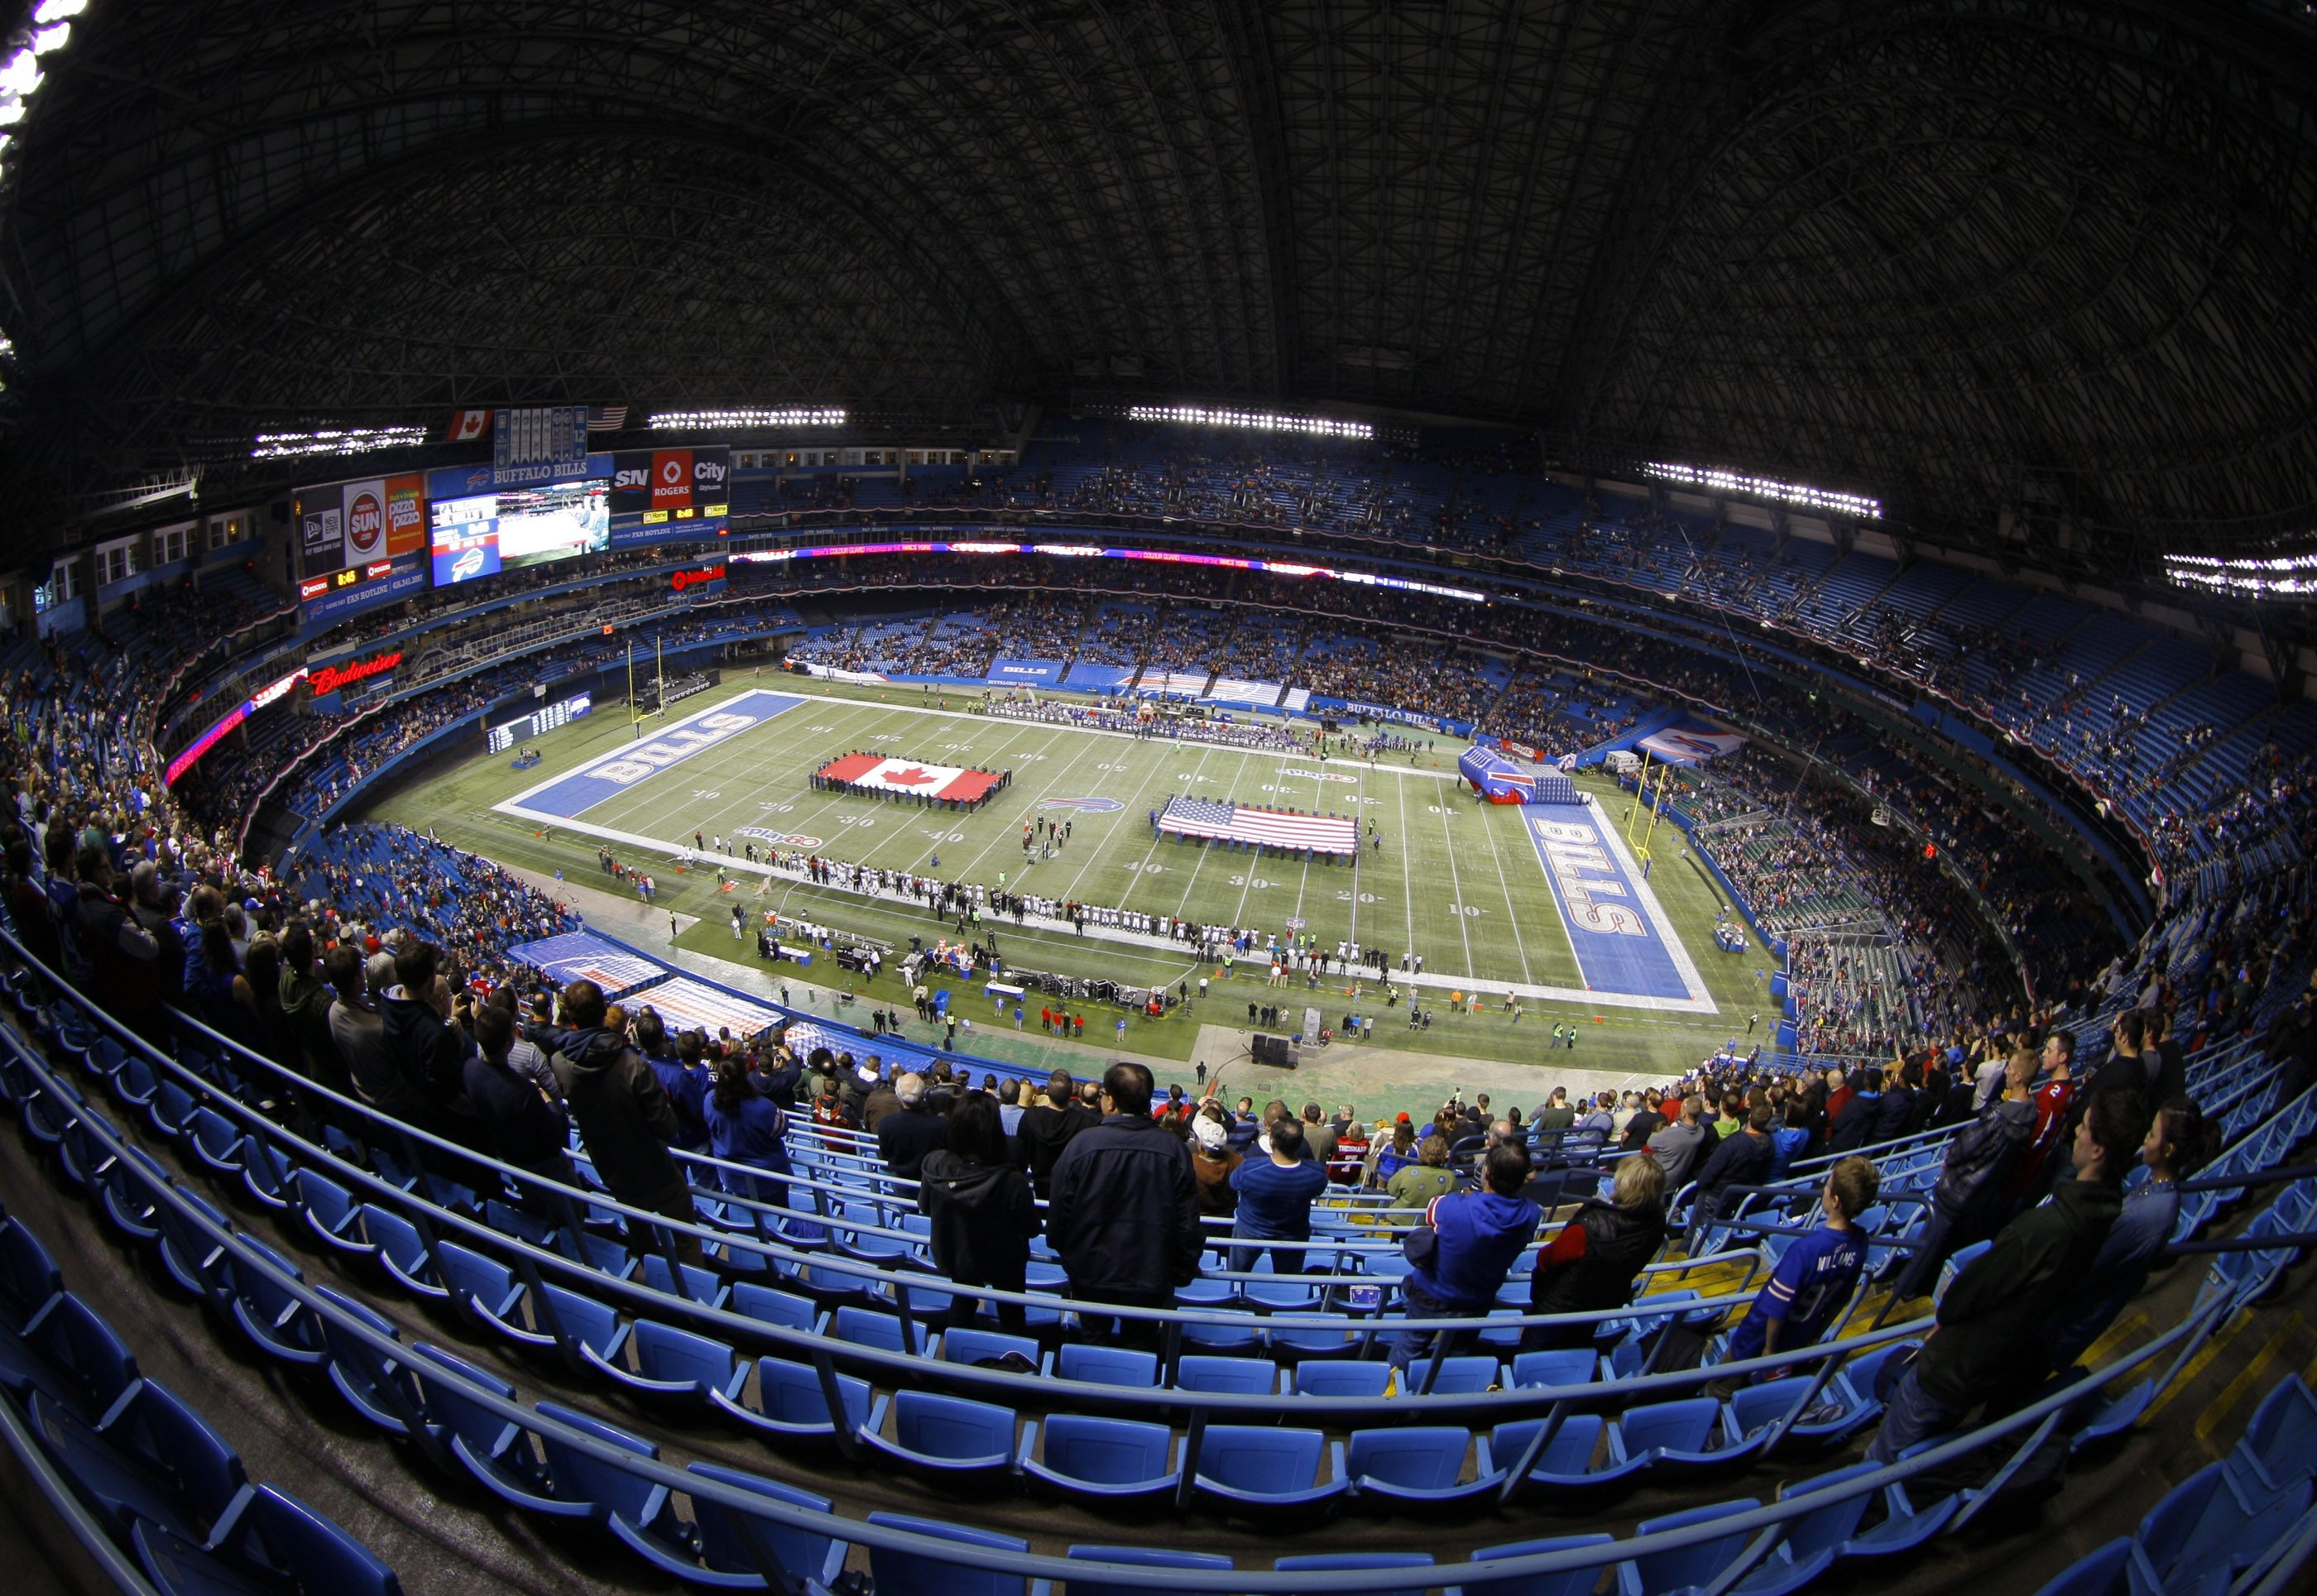 The Buffalo Bills take the field at the Rogers Centre in Toronto on Dec. 1, 2013.  The game drew an announced crowd of 38,969, at least 12,000 short of a sellout.